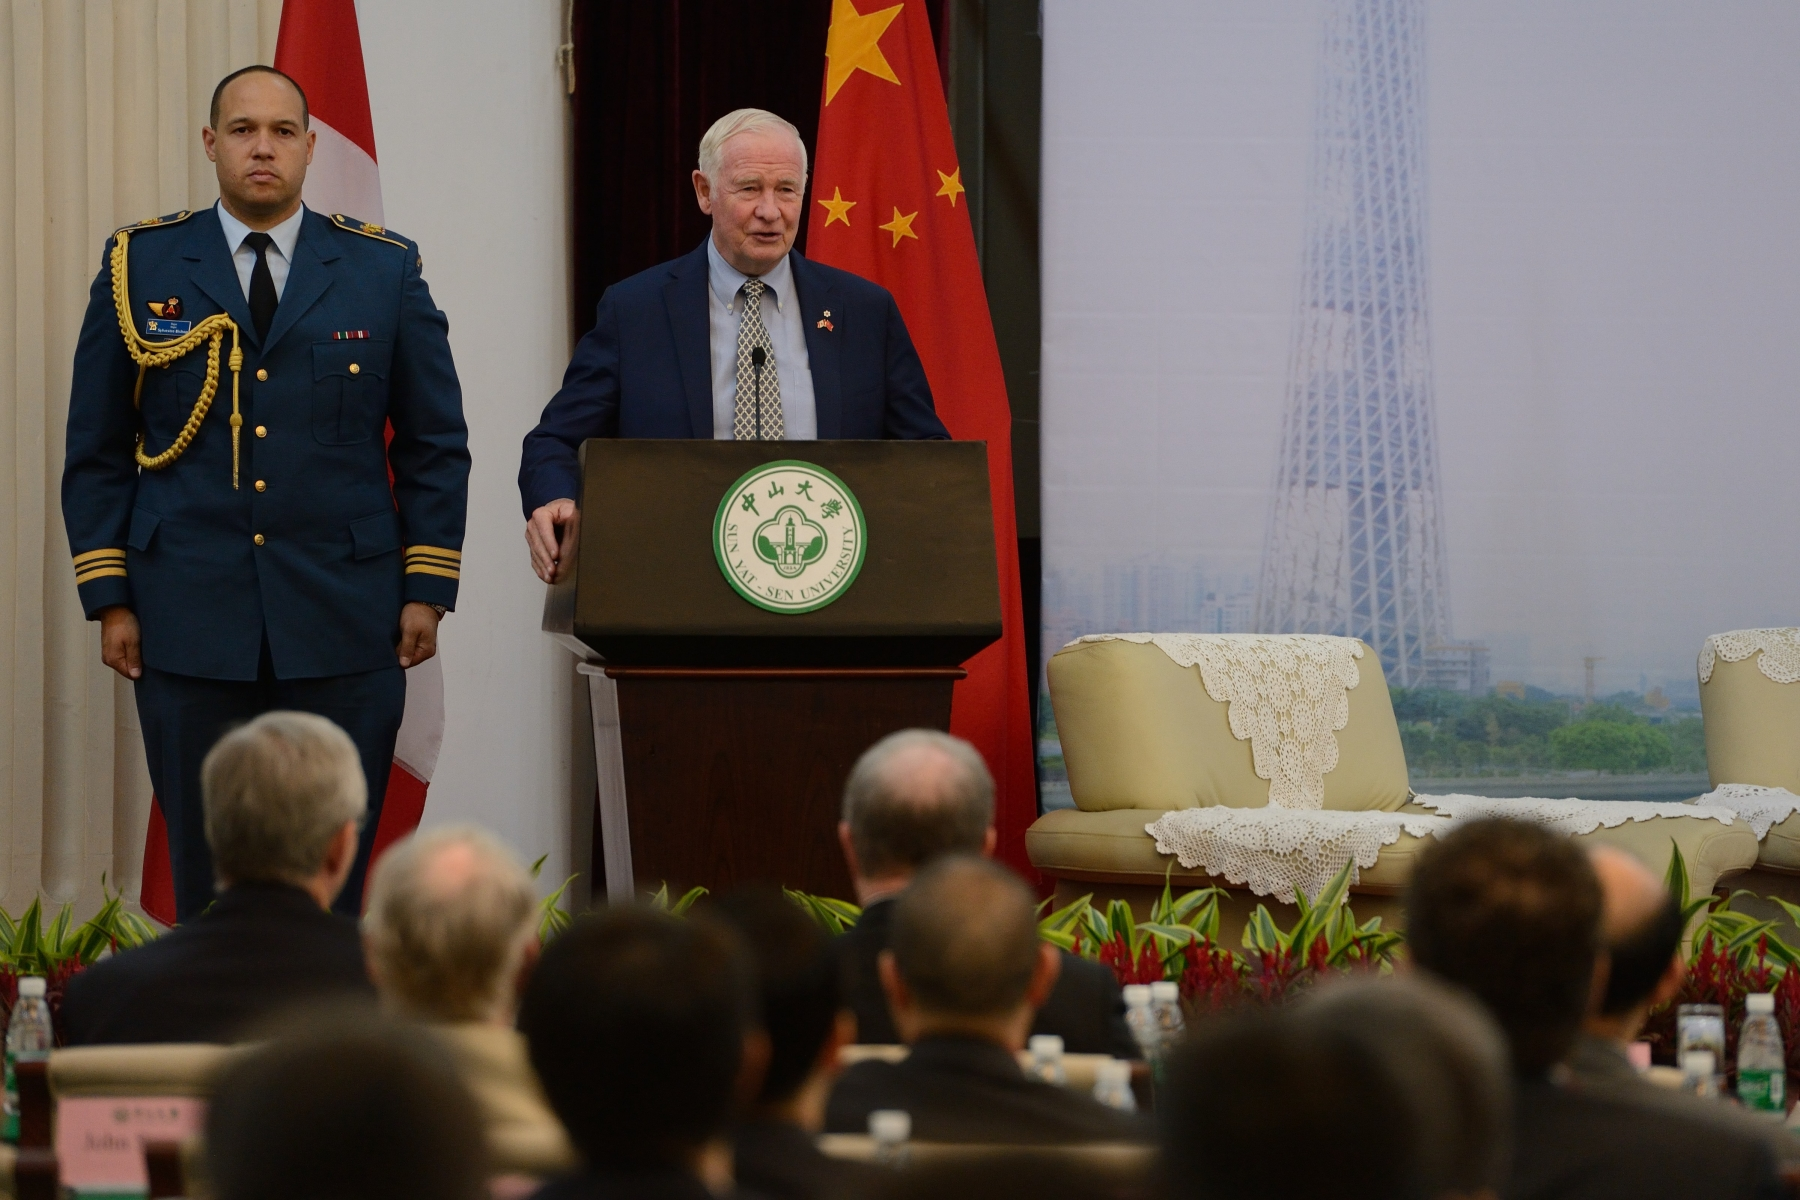 His Excellency then delivered a speech on the future of innovation and its impact on the Canada-China relationship.